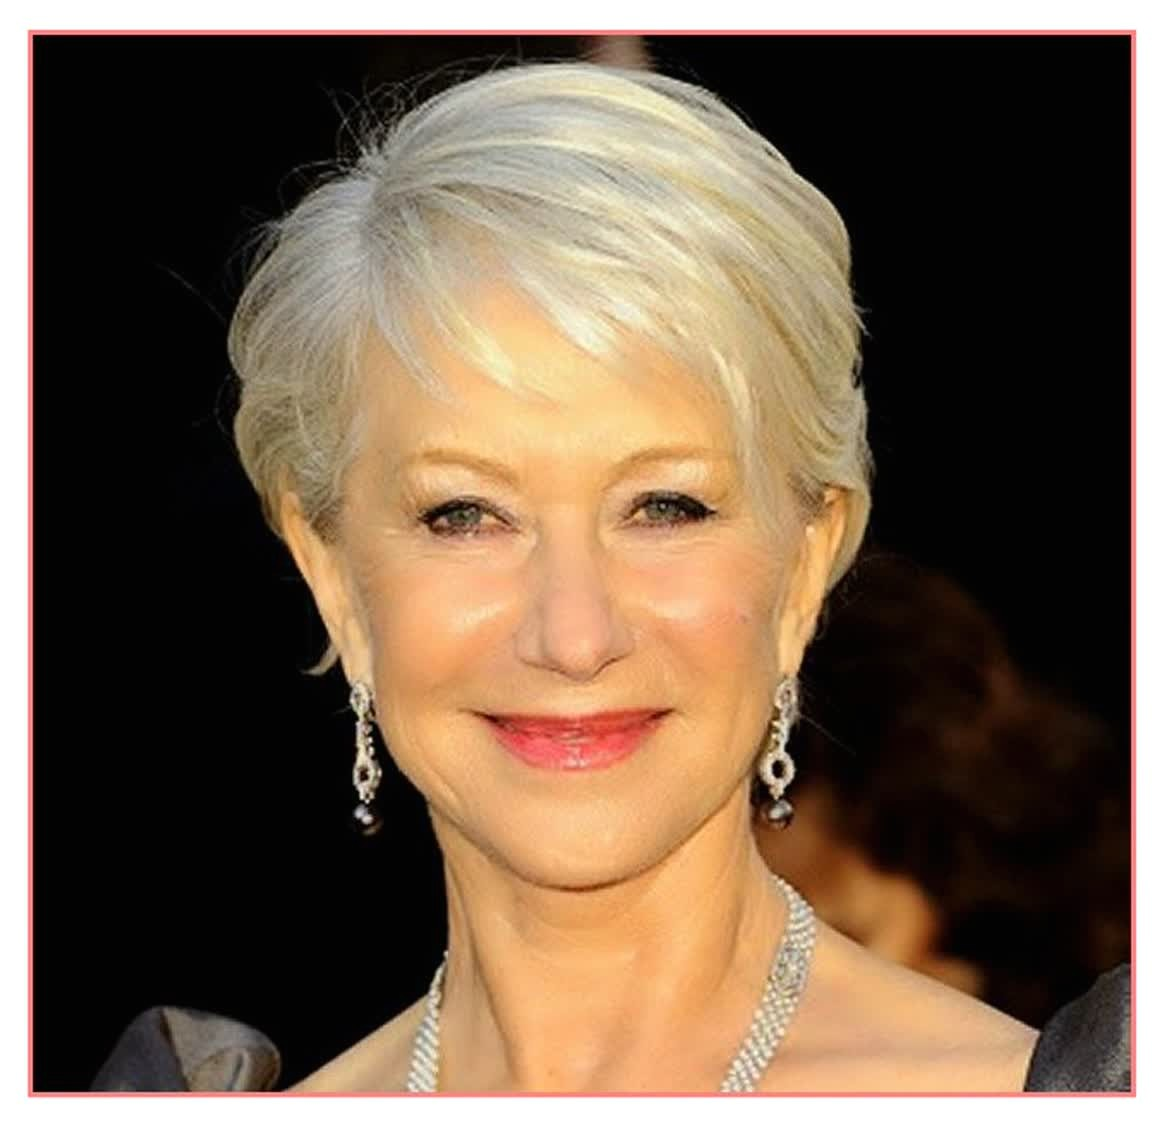 Short Hairstyles for Over 60 Years Old Hairstyles for Women Over 60 Years Old